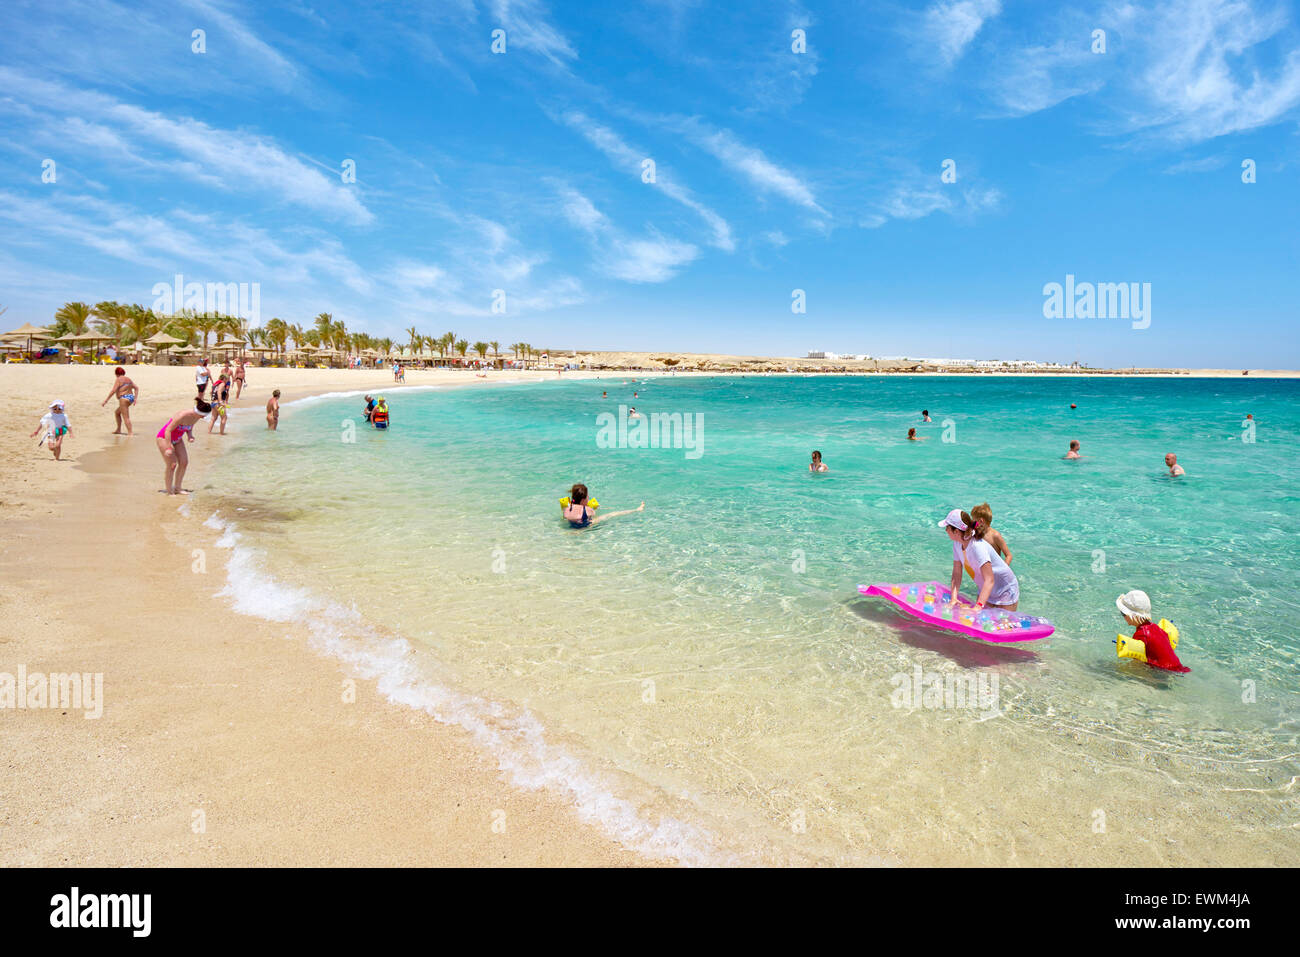 Abu Dabbab Beach, Marsa Alam, Red Sea, Egypt Stock Photo